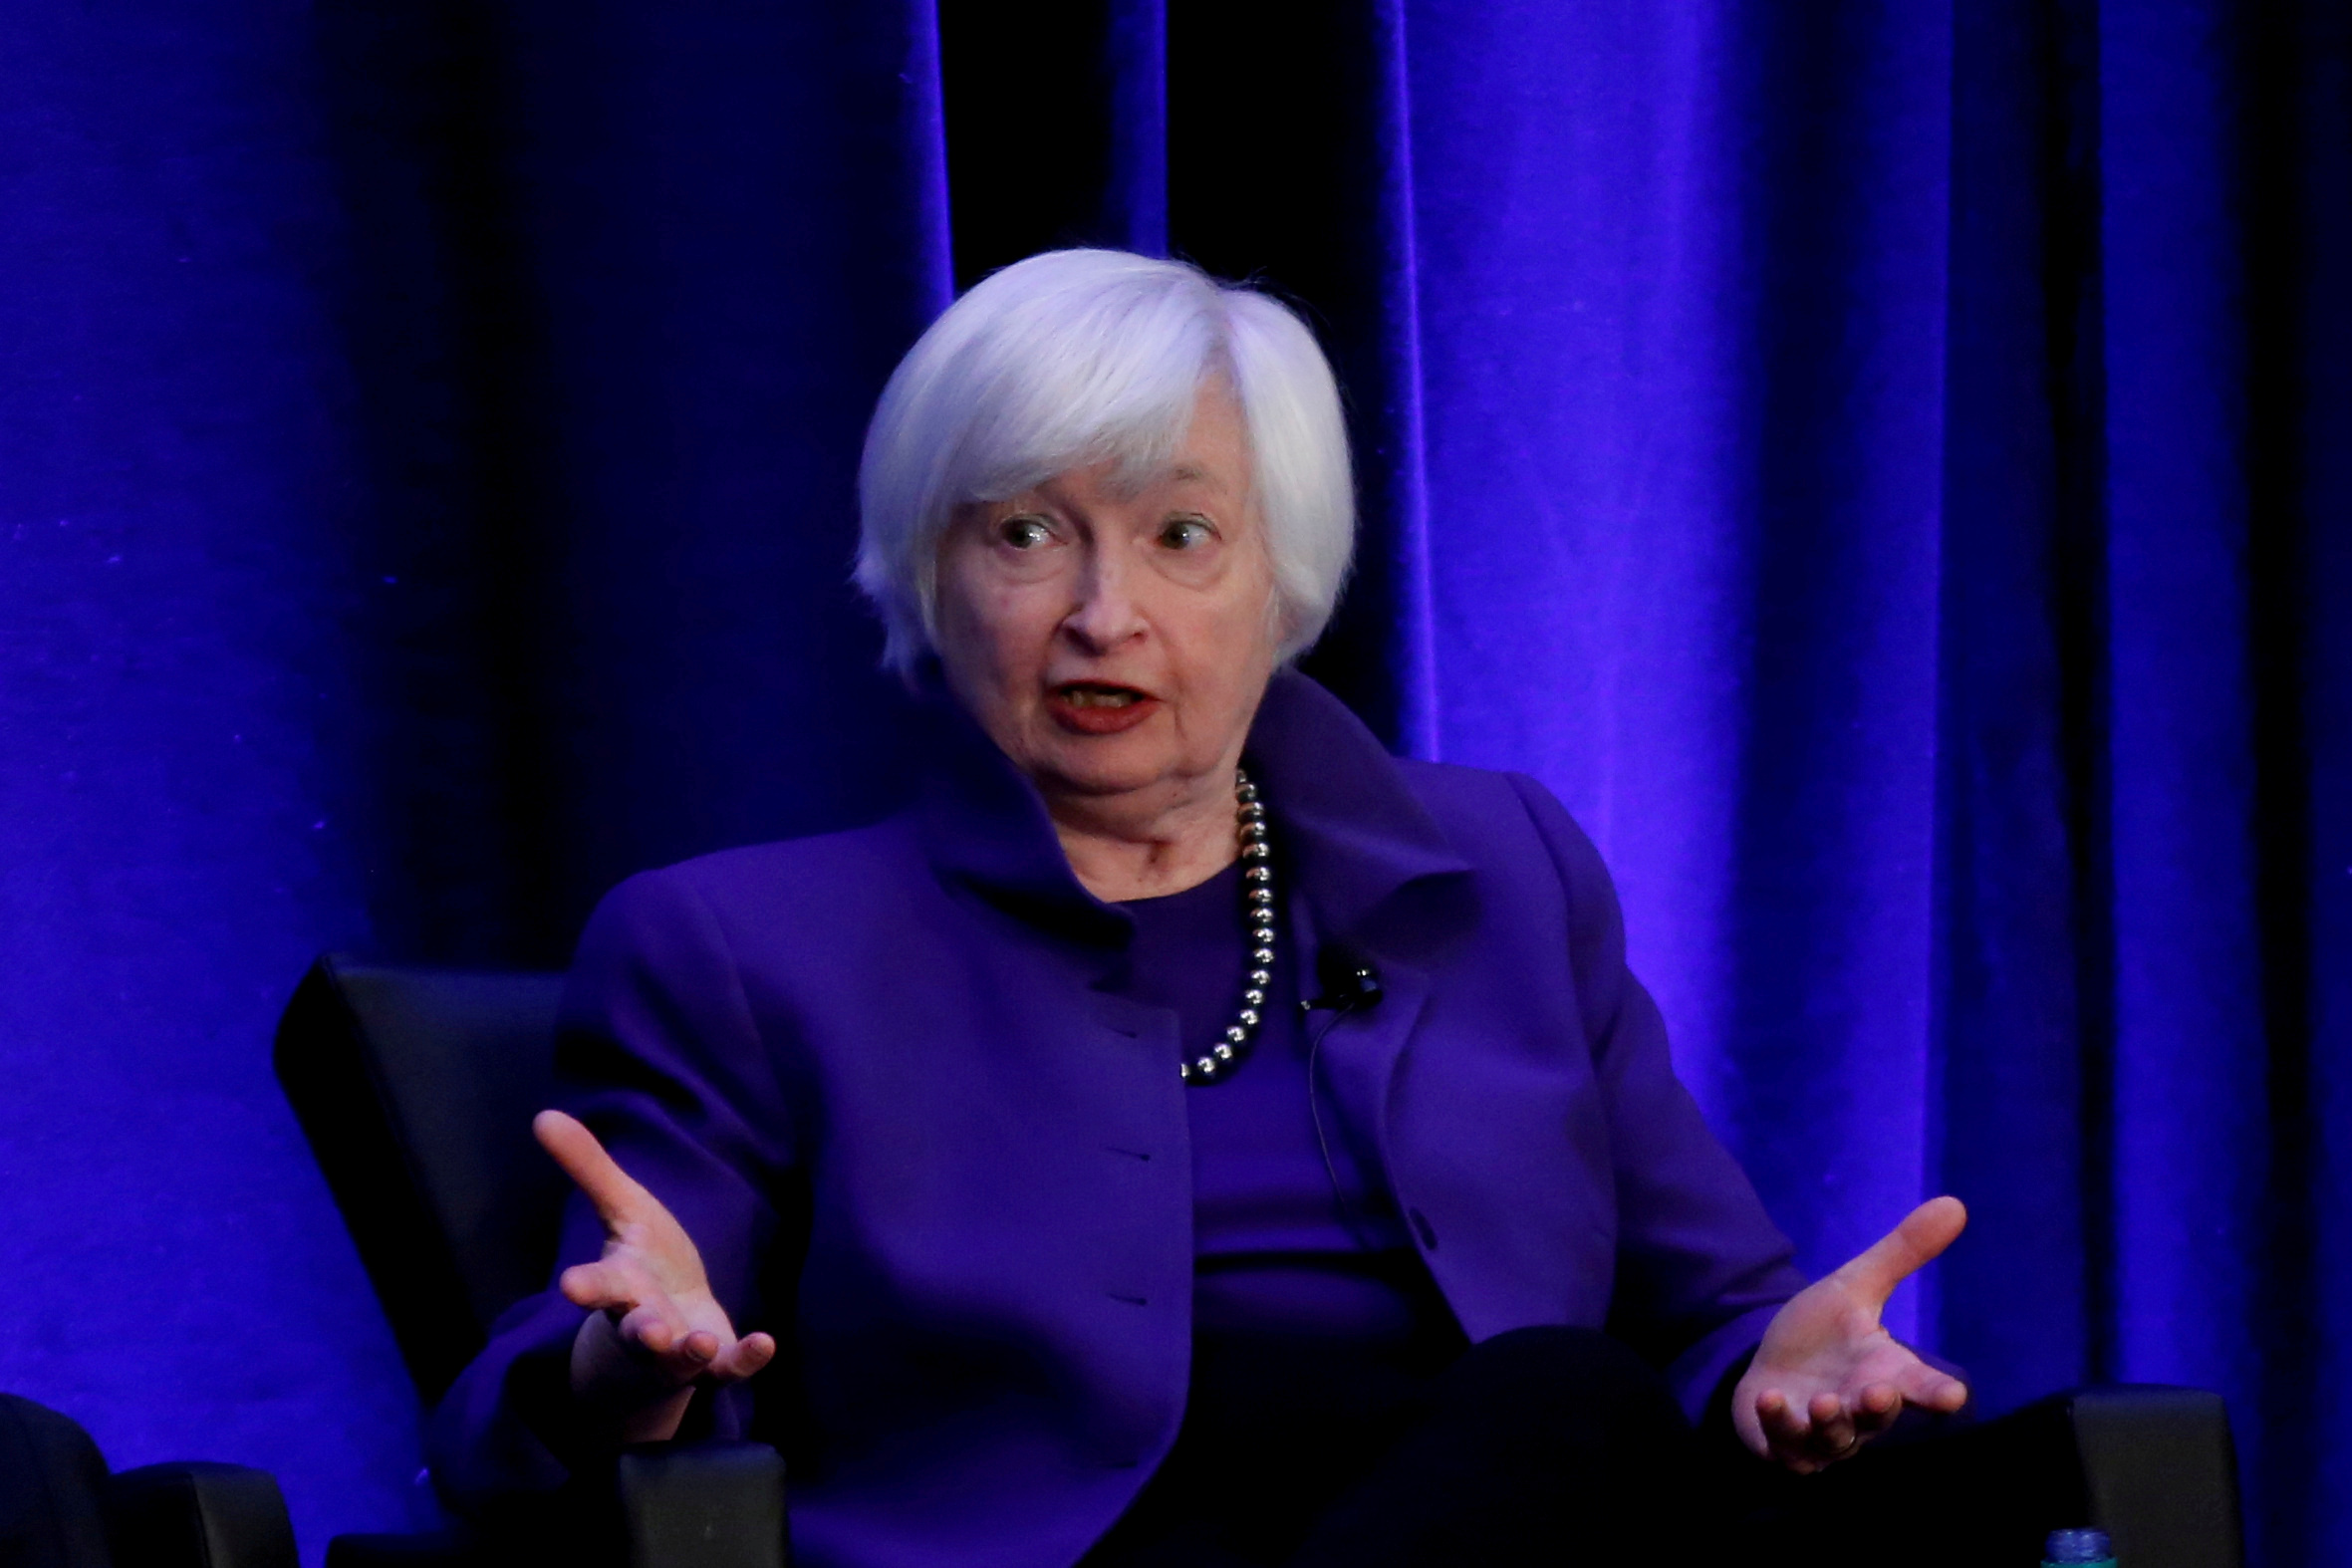 Janet Yellen speaks during a panel discussion at the American Economic Association/Allied Social Science Association 2019 meeting in Atlanta, Georgia, U.S., January 4, 2019.  REUTERS/Christopher Aluka Berry/File Photo